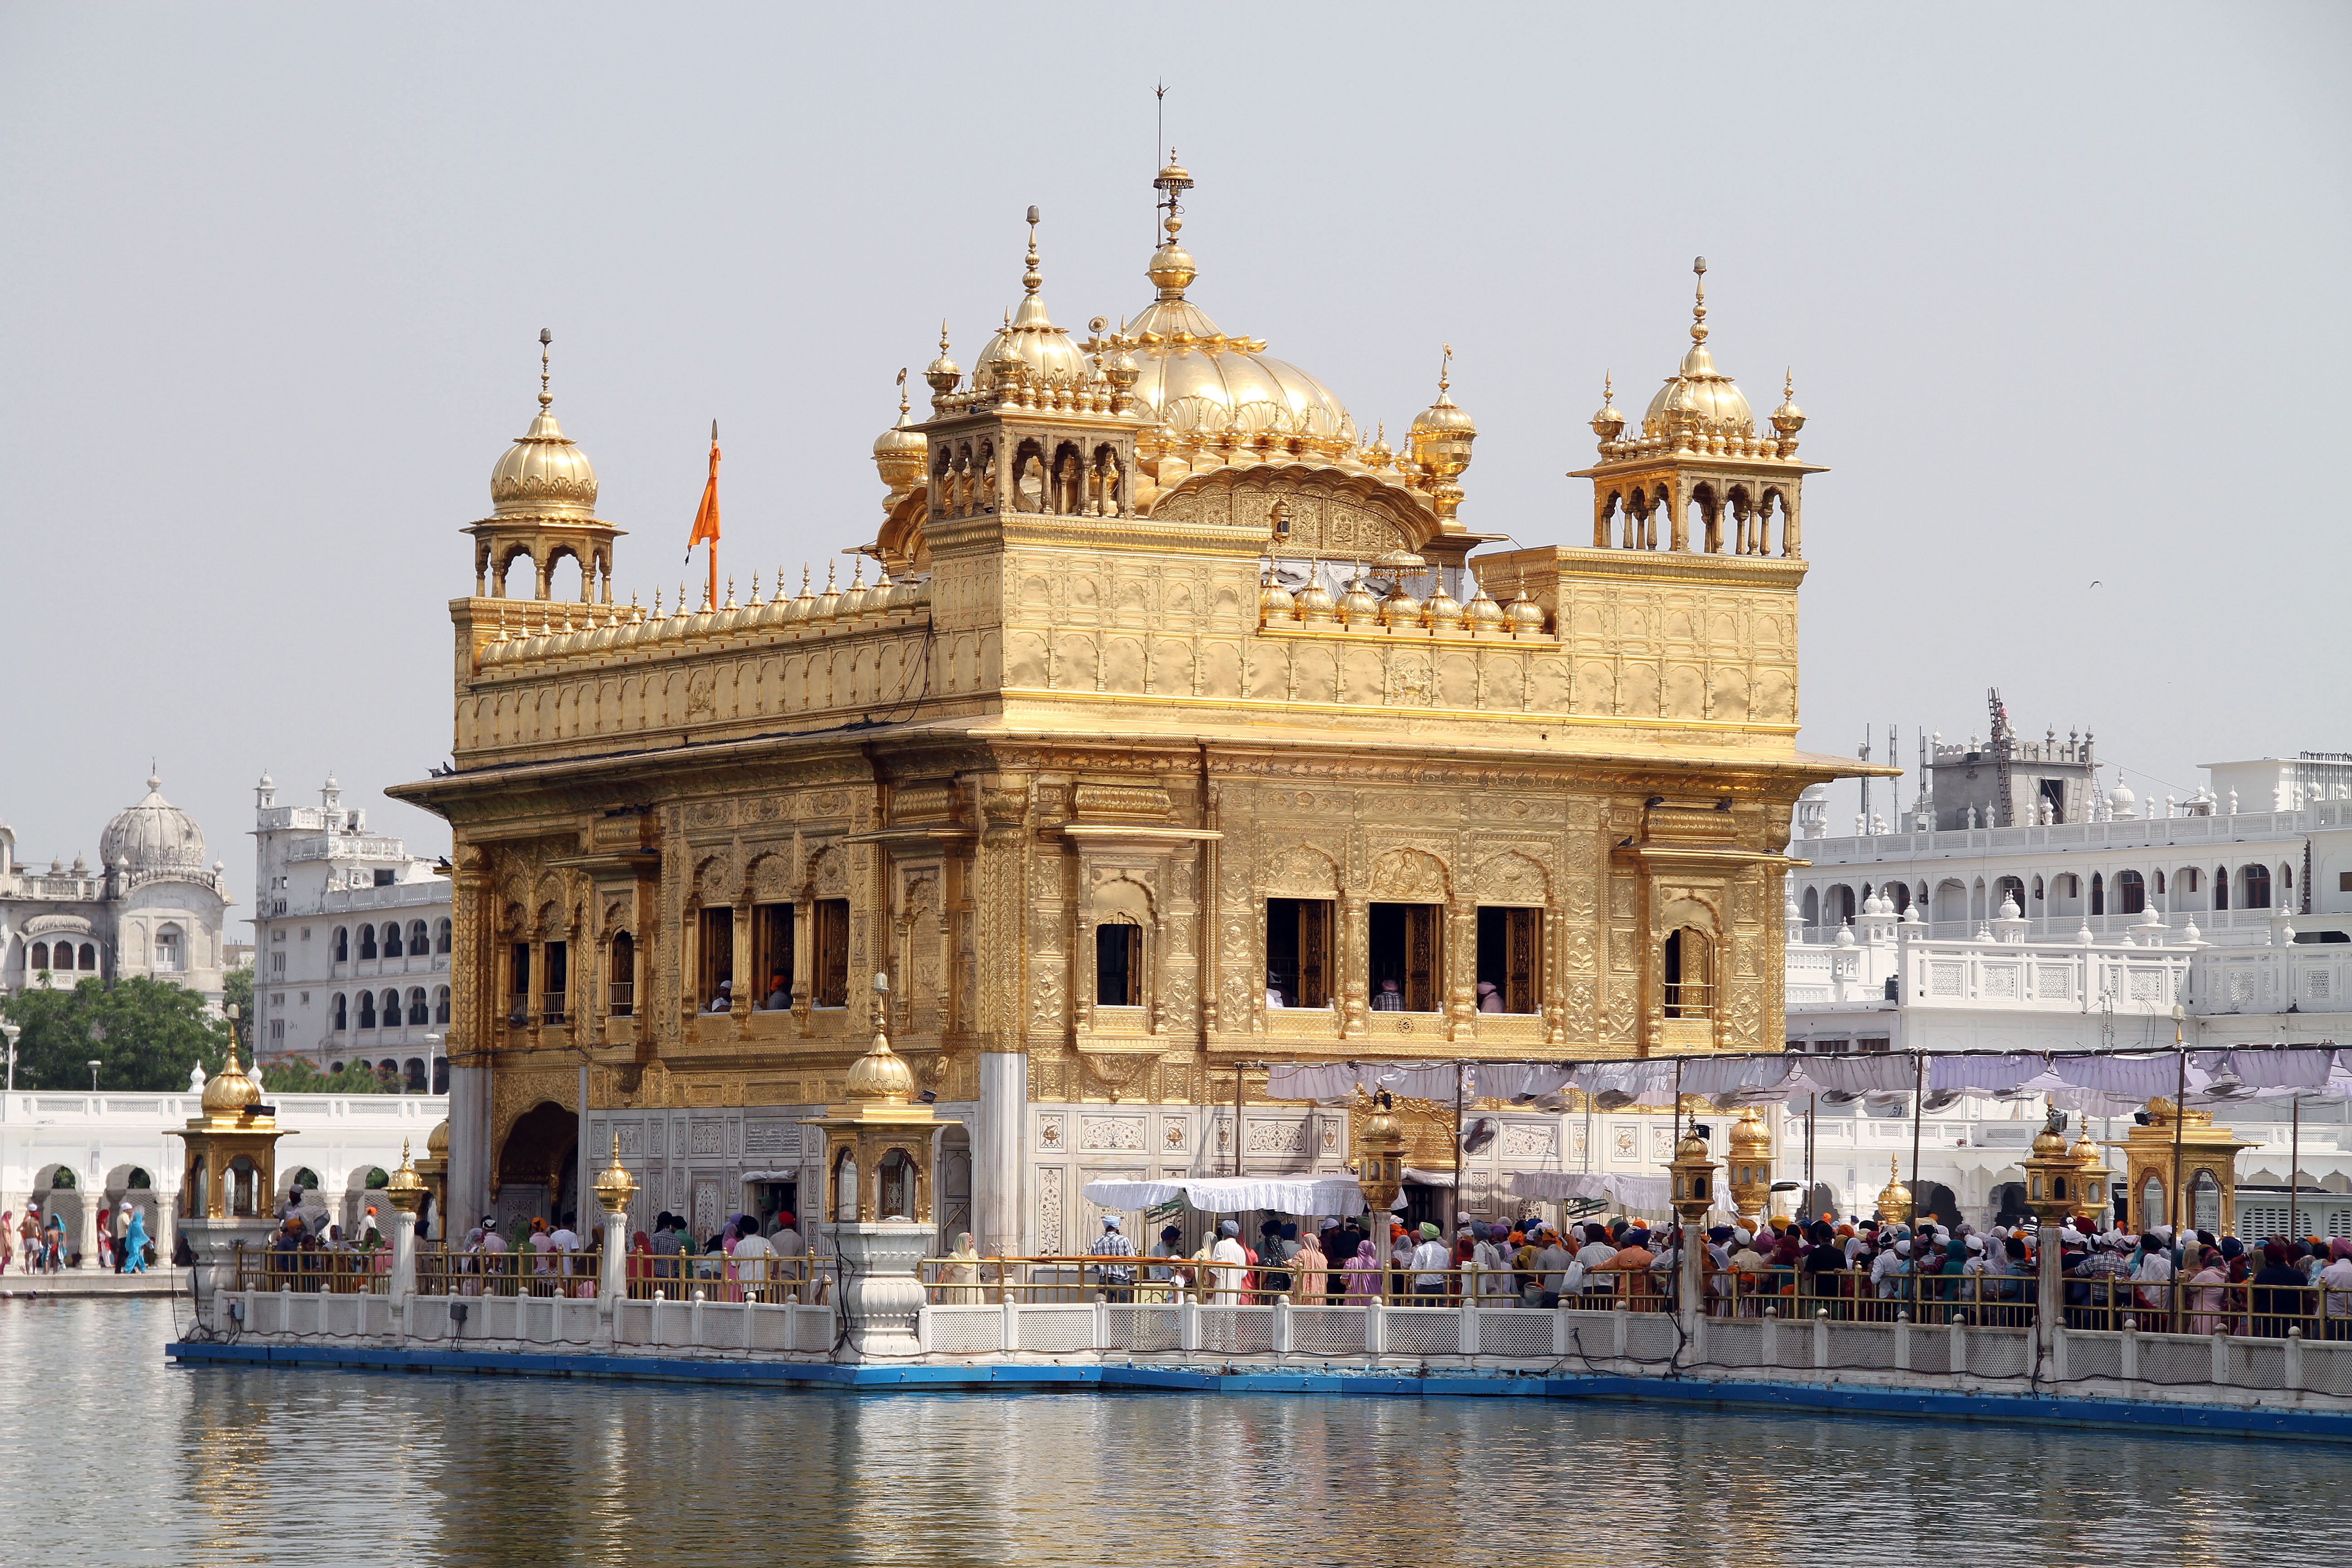 hamandir sahib the golden temple,amritsar,punjab 5k retina ultra hd